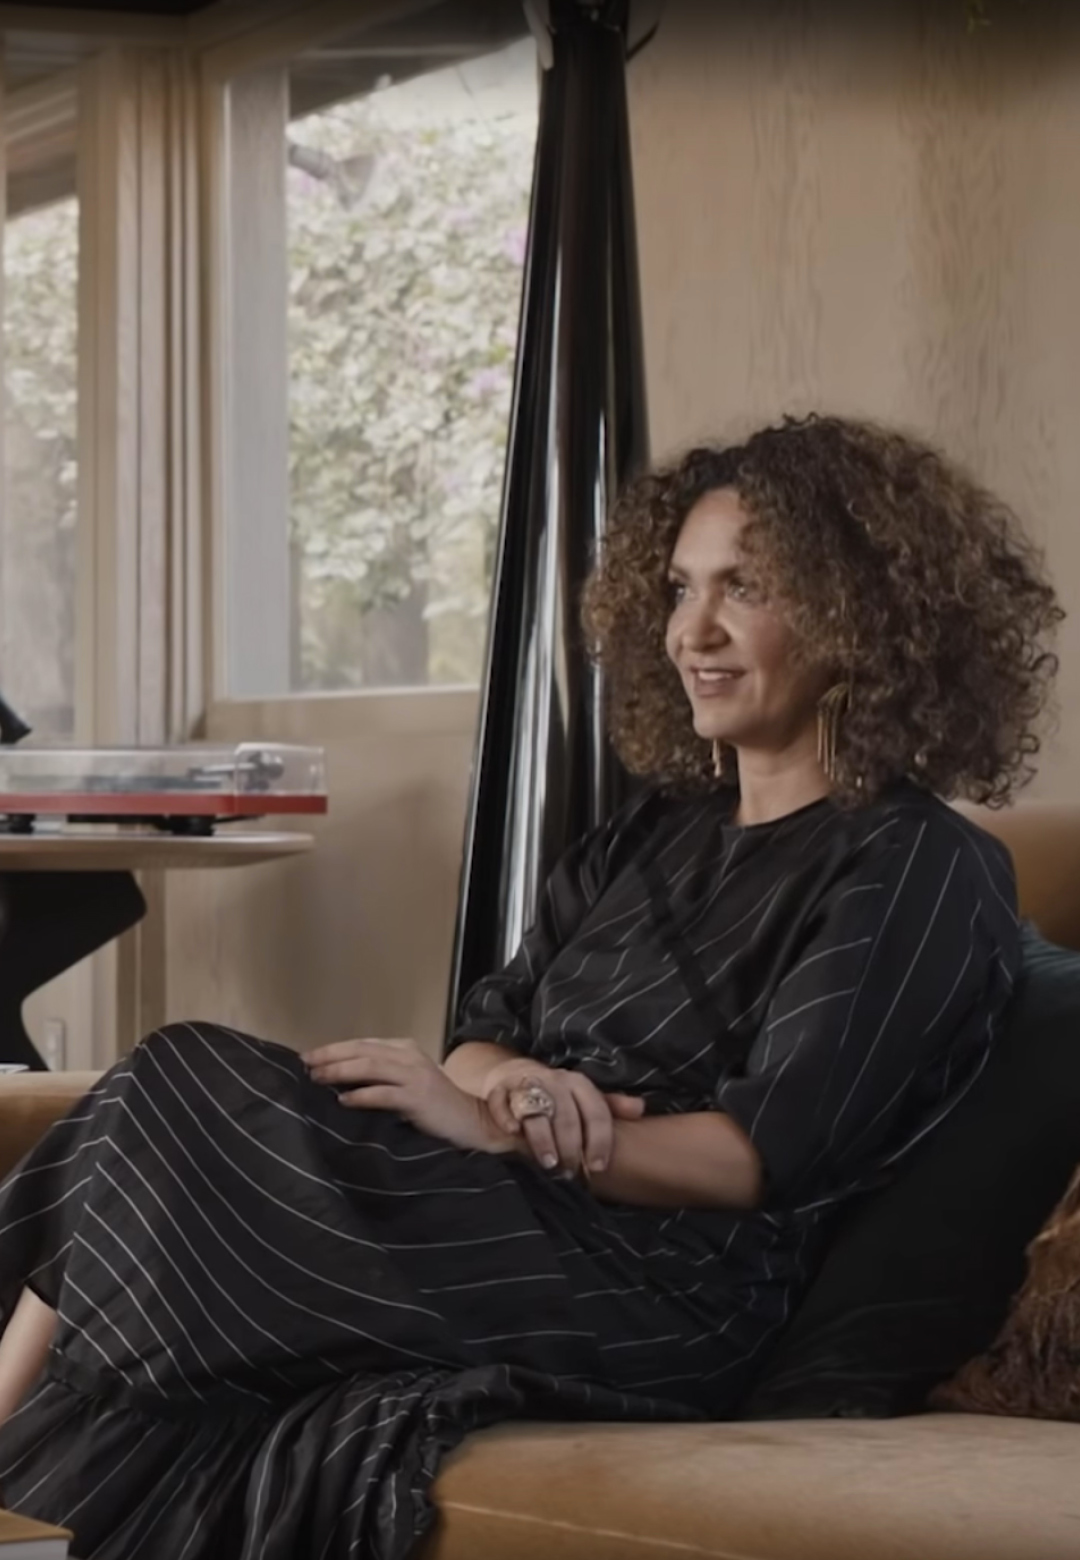 Inside the house of celebrated interior designer Pamela Shamshiri, in Los Angeles, United States | Pamela Shamshiri | In Residence | NOWNESS | STIRworld